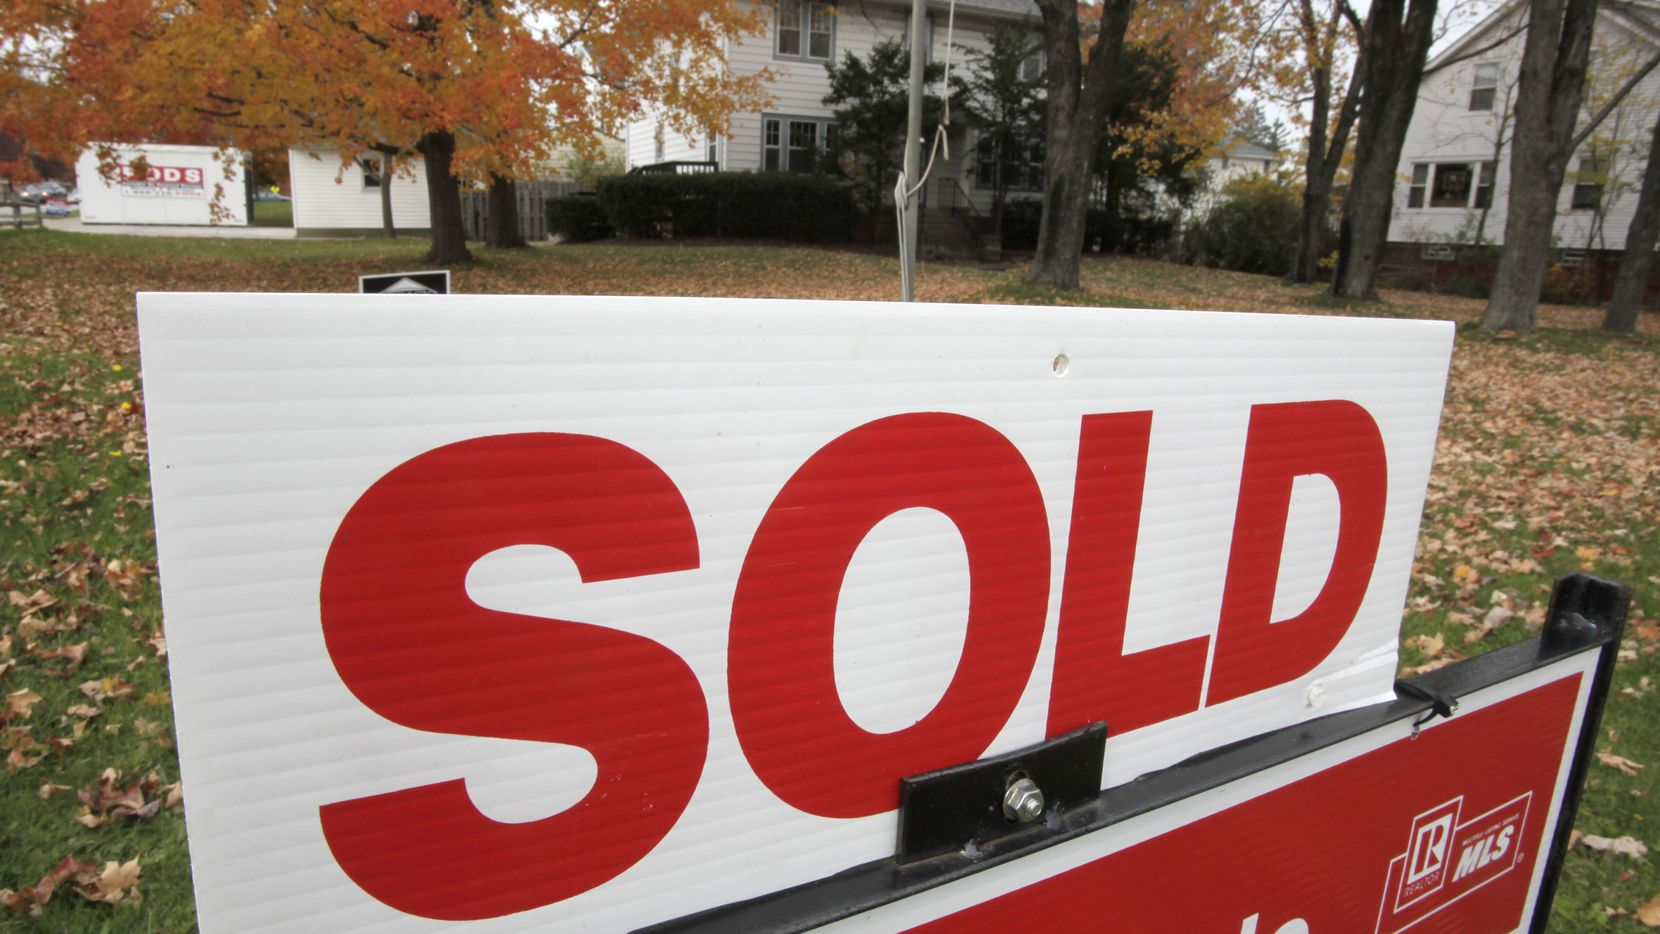 More than 1,100 D-FW homes were sold as flips in the first quarter - the ninth most of any major U.S. market.